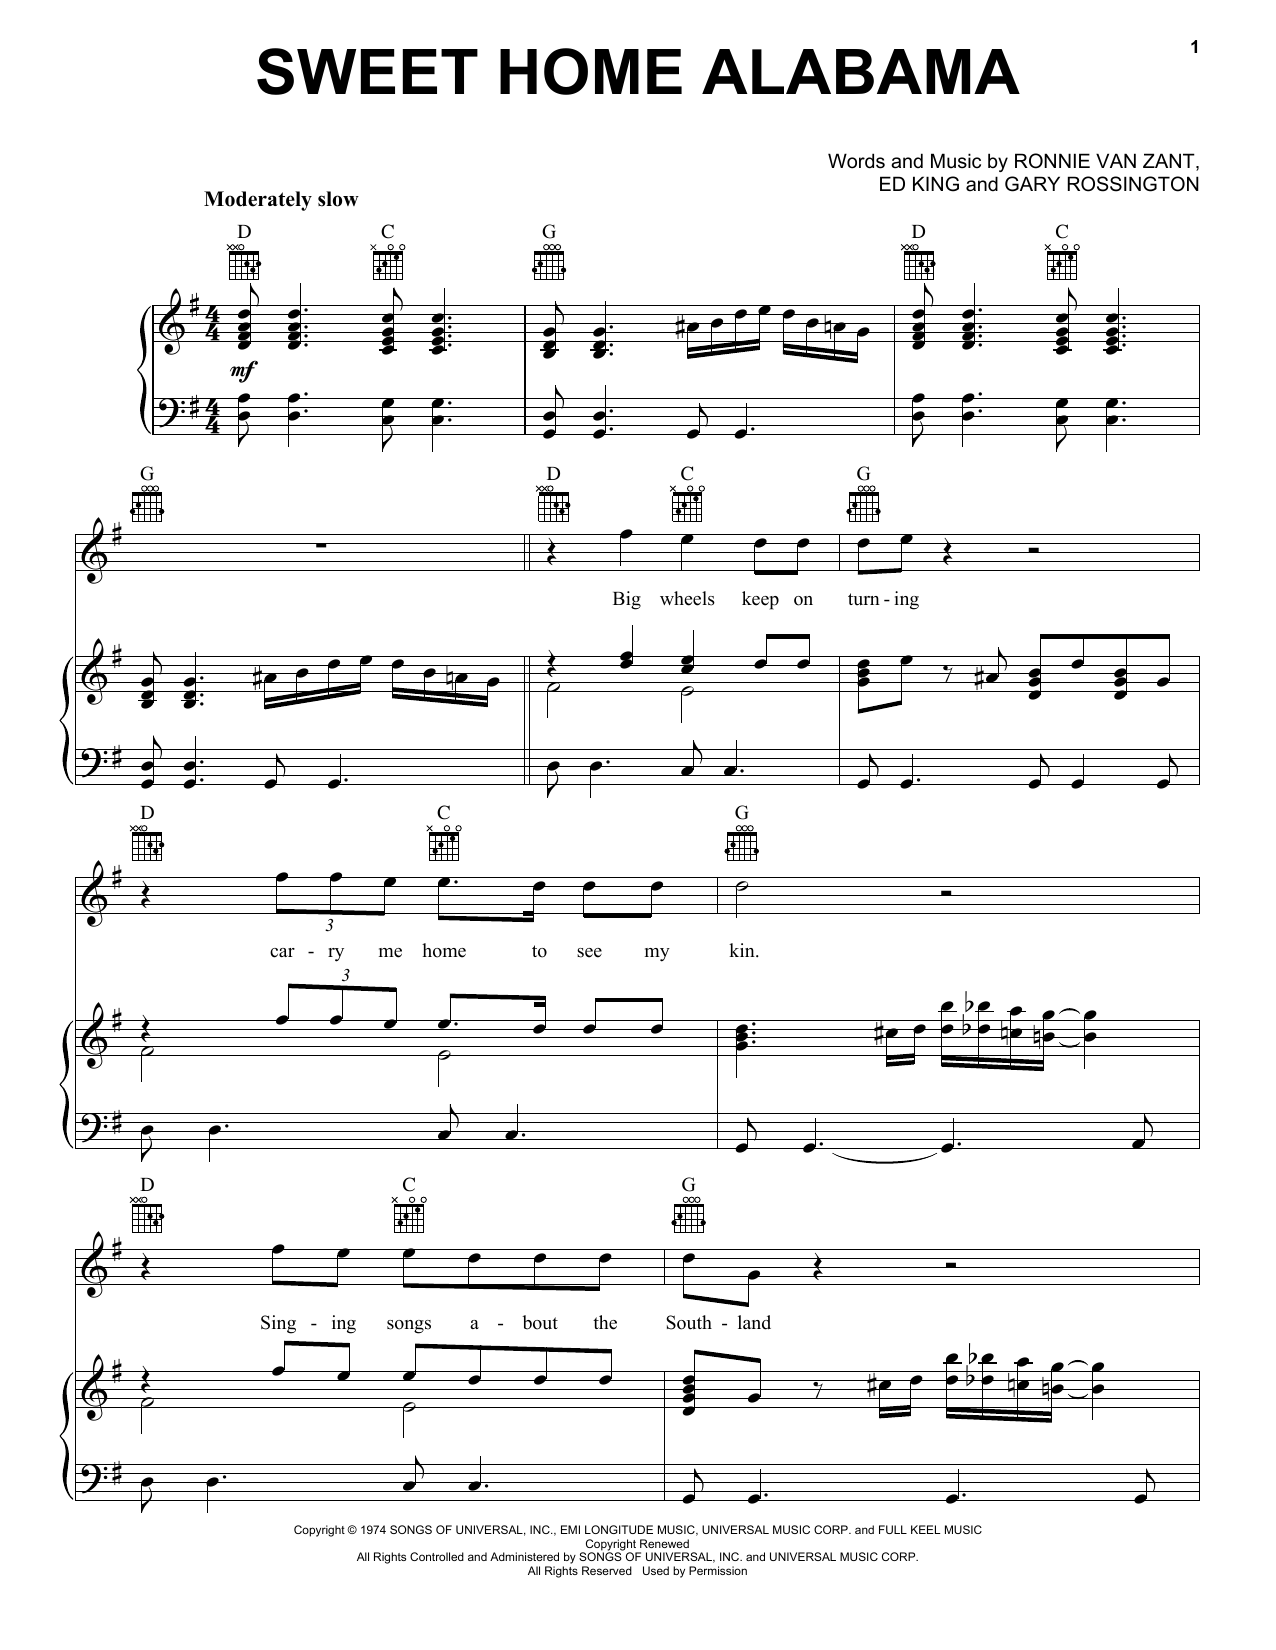 Sweet Home Alabama | Sheet Music Direct